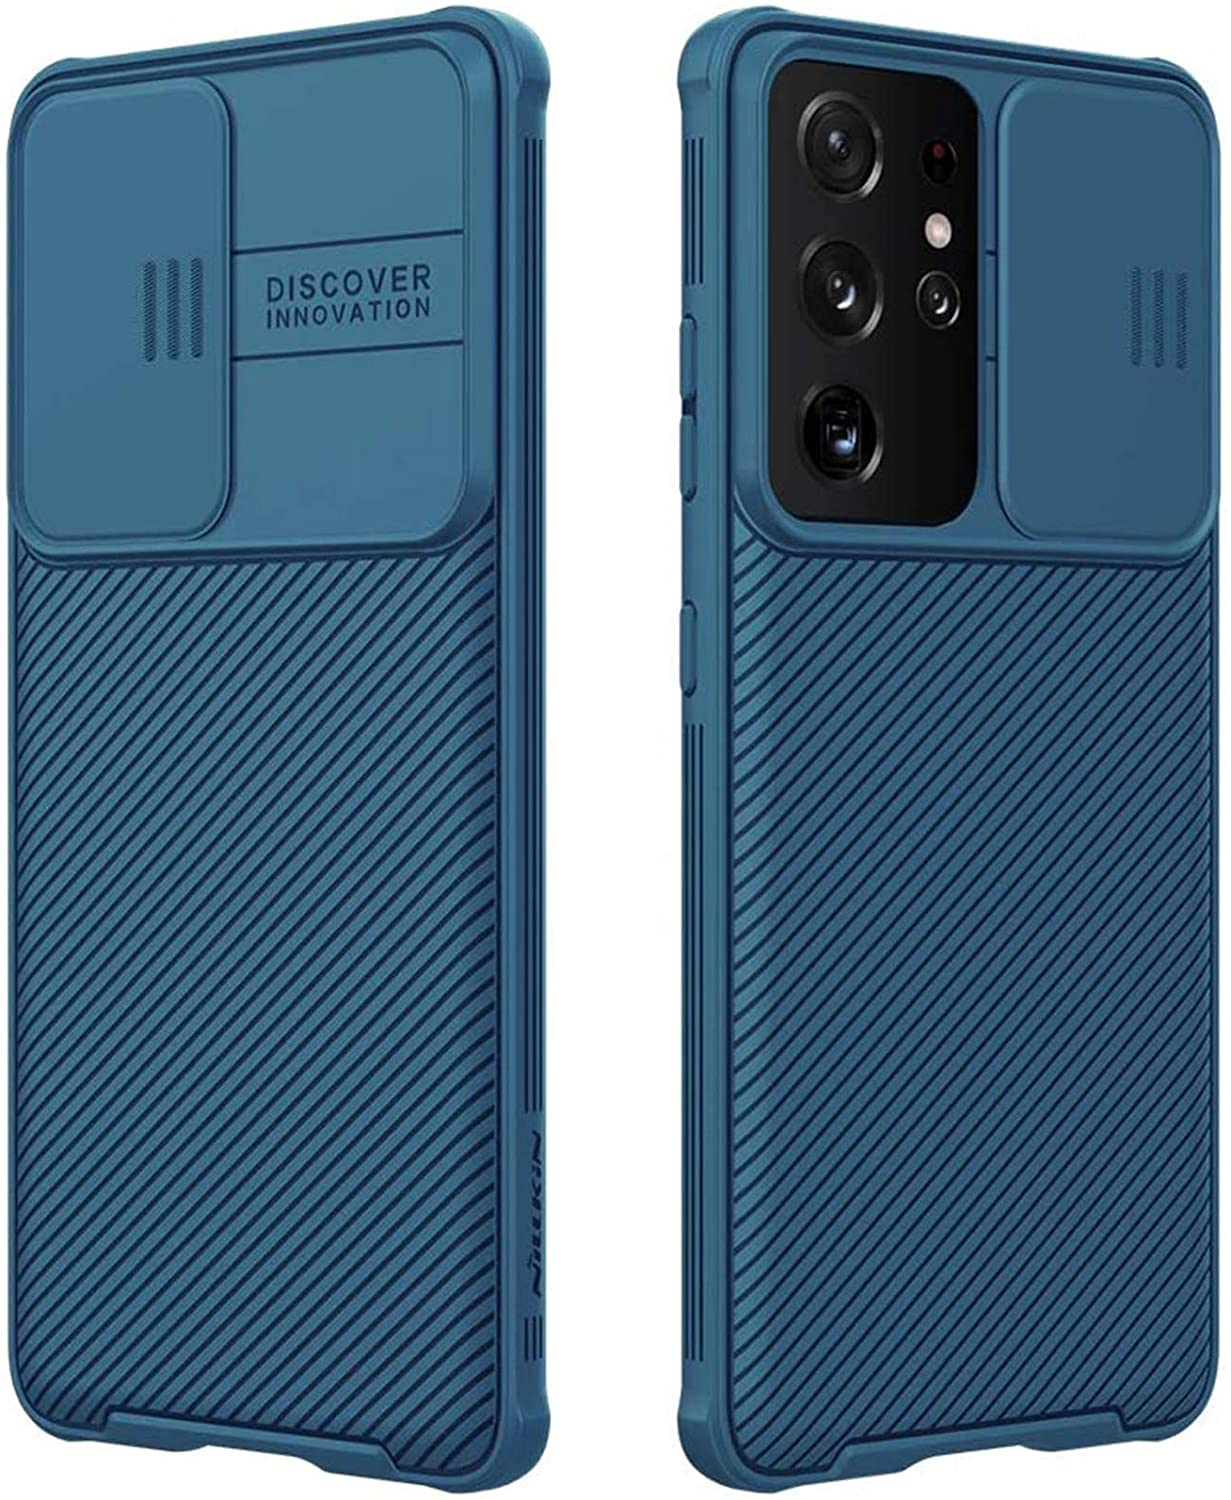 CloudValley for Samsung Galaxy S21 Ultra Case with Camera Cover, Full-Body Protective & Slim Fit, Camera Protection Case Only for Samsung Galaxy S21 Ultra 5G 6.8 inch (2021 Release)-Blue